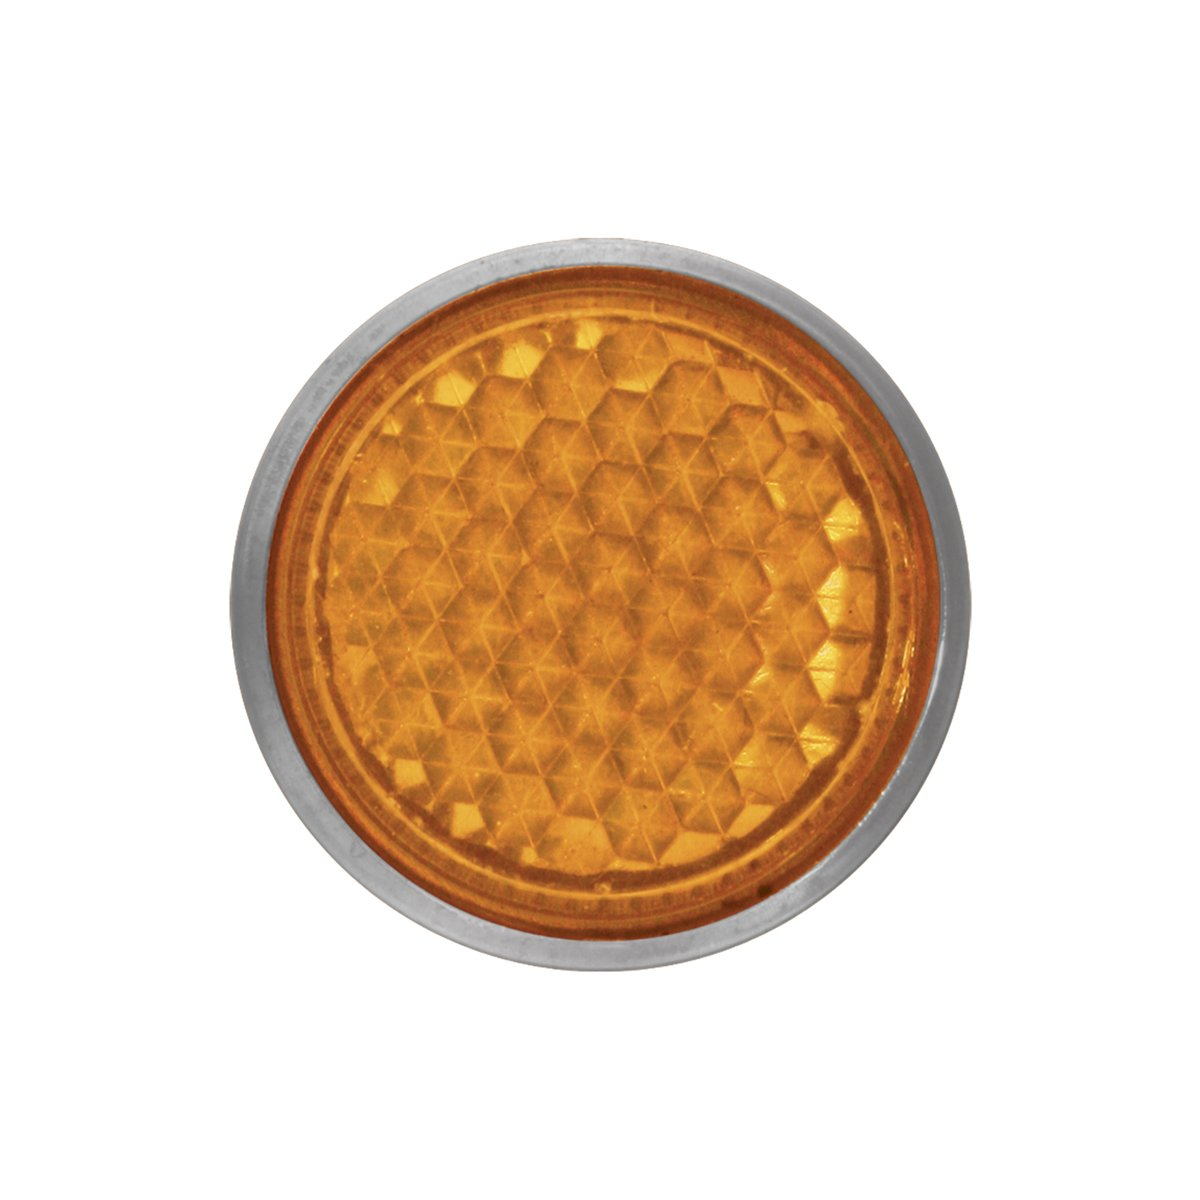 "1 Pack RVs and Buses Towing Grand General 80831 Round Amber 2-1//8/"" Stick-On Reflector with Chrome Bezel for Trucks Trailers"